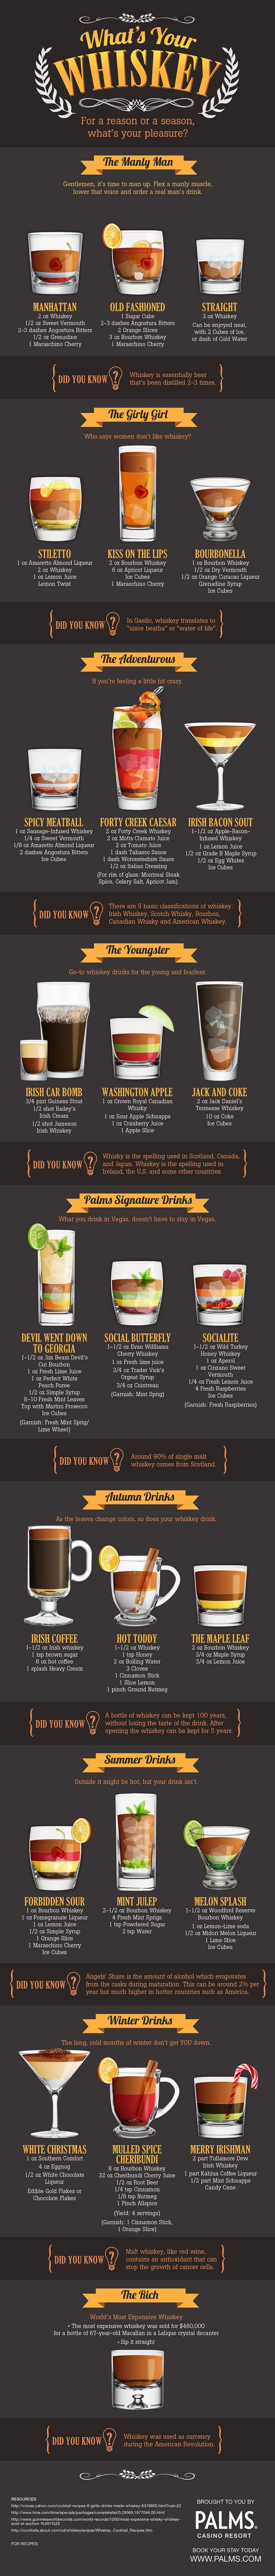 What's Your Whisky #infographic #infografía